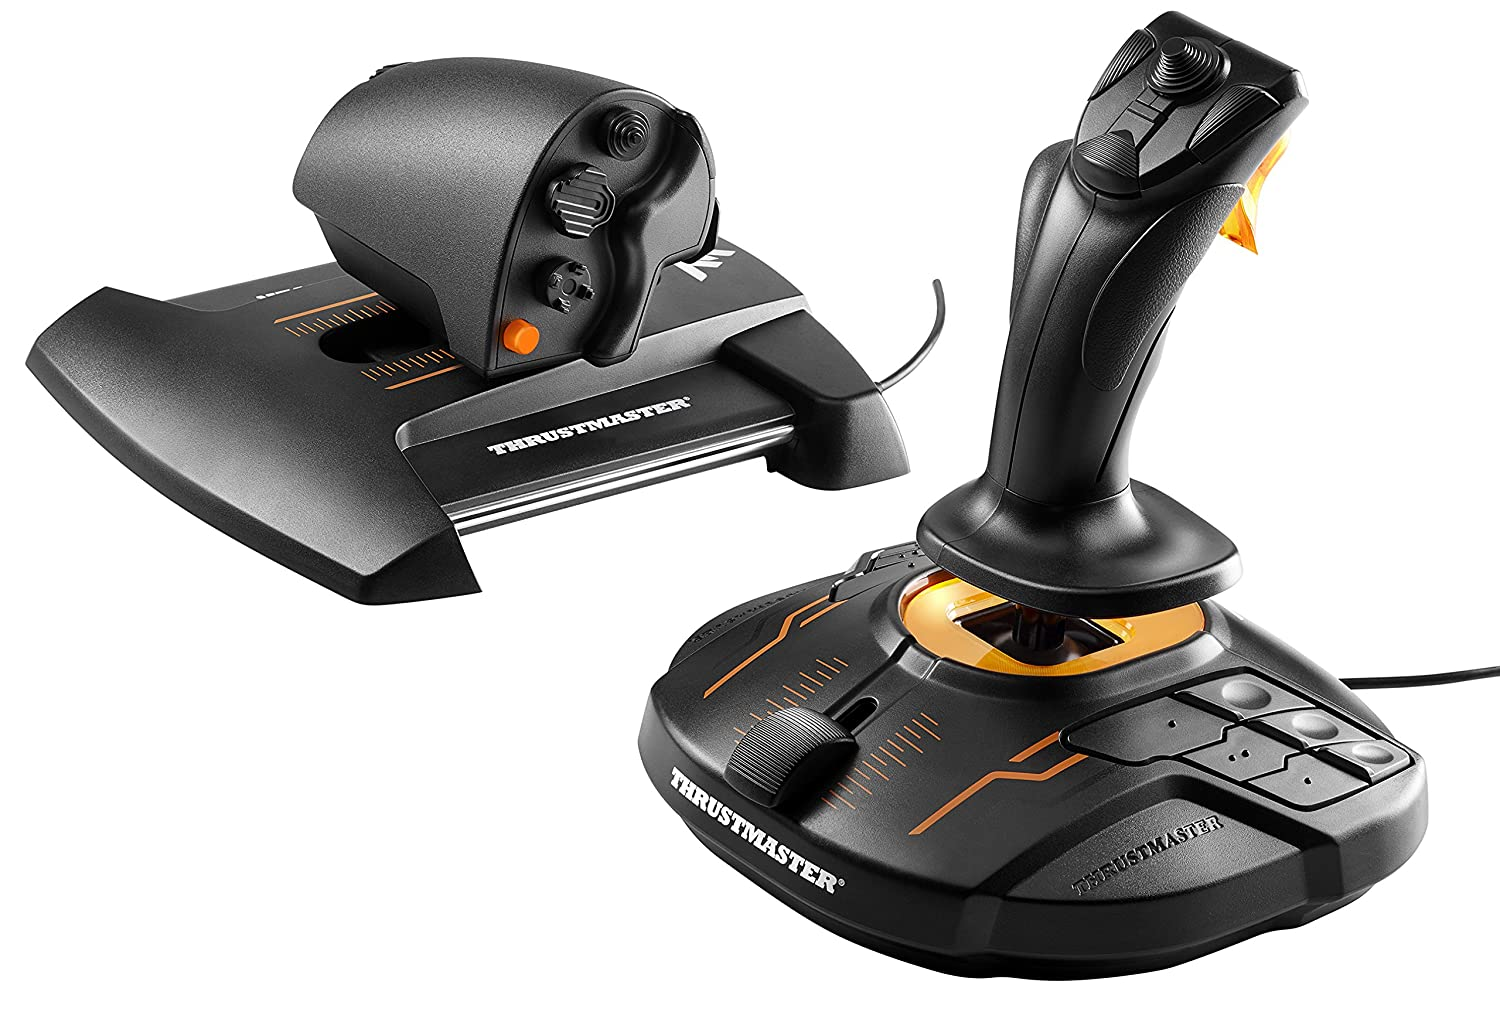 Thrustmaster T16000M FCS Flight Pack (Hotas System inkl. Pedale, T.A.R.G.E.T Software, PC) 2960782